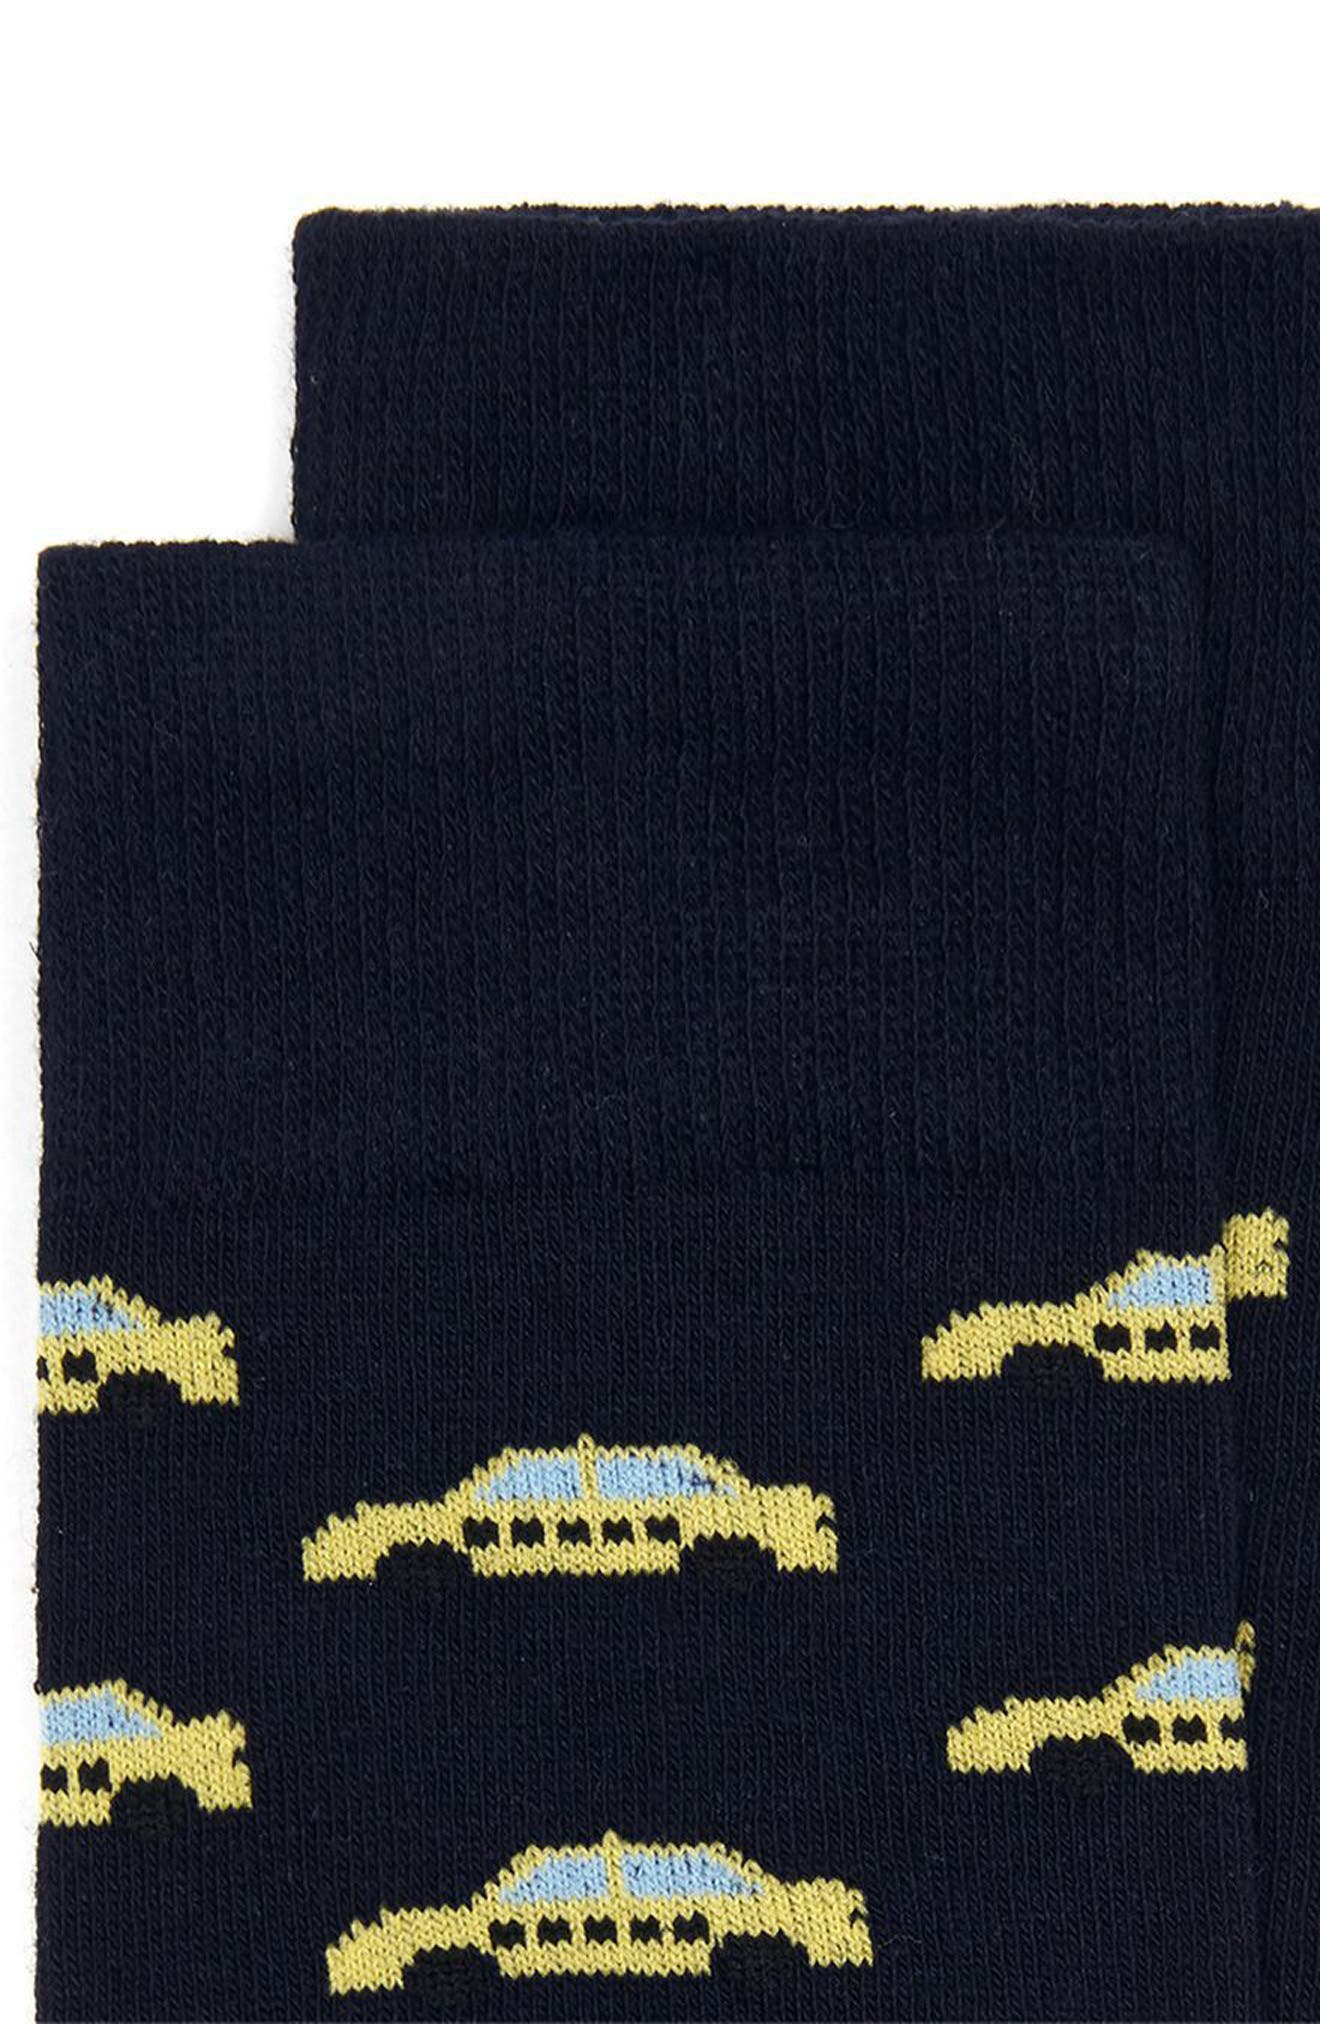 Taxi Crew Socks,                             Alternate thumbnail 2, color,